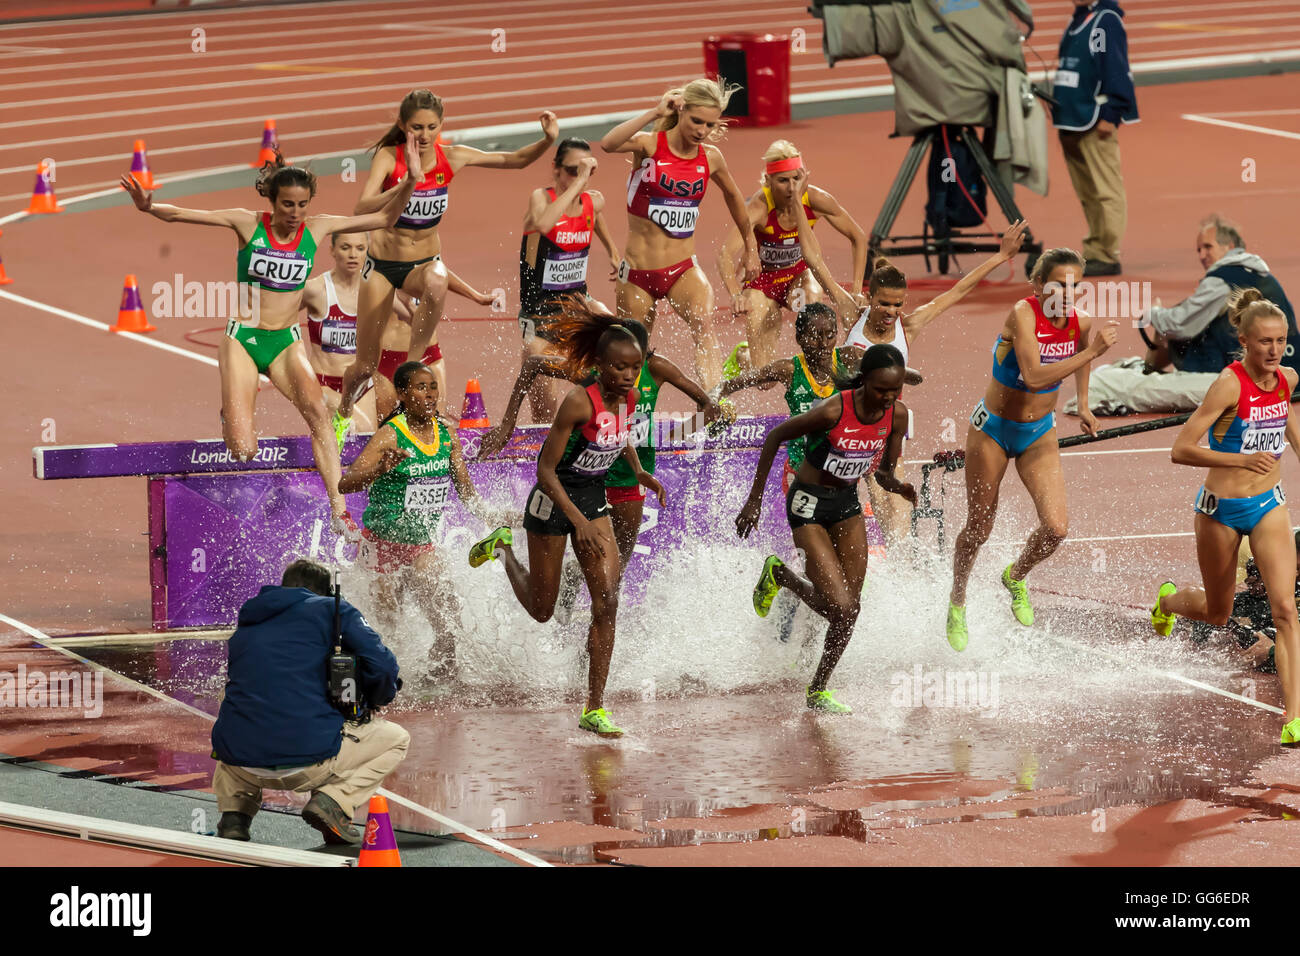 Competitors, Women's 3000m steeplechase final, splash over water hurdle, Olympic Stadium, London 2012, Olympic Games, Stock Photo